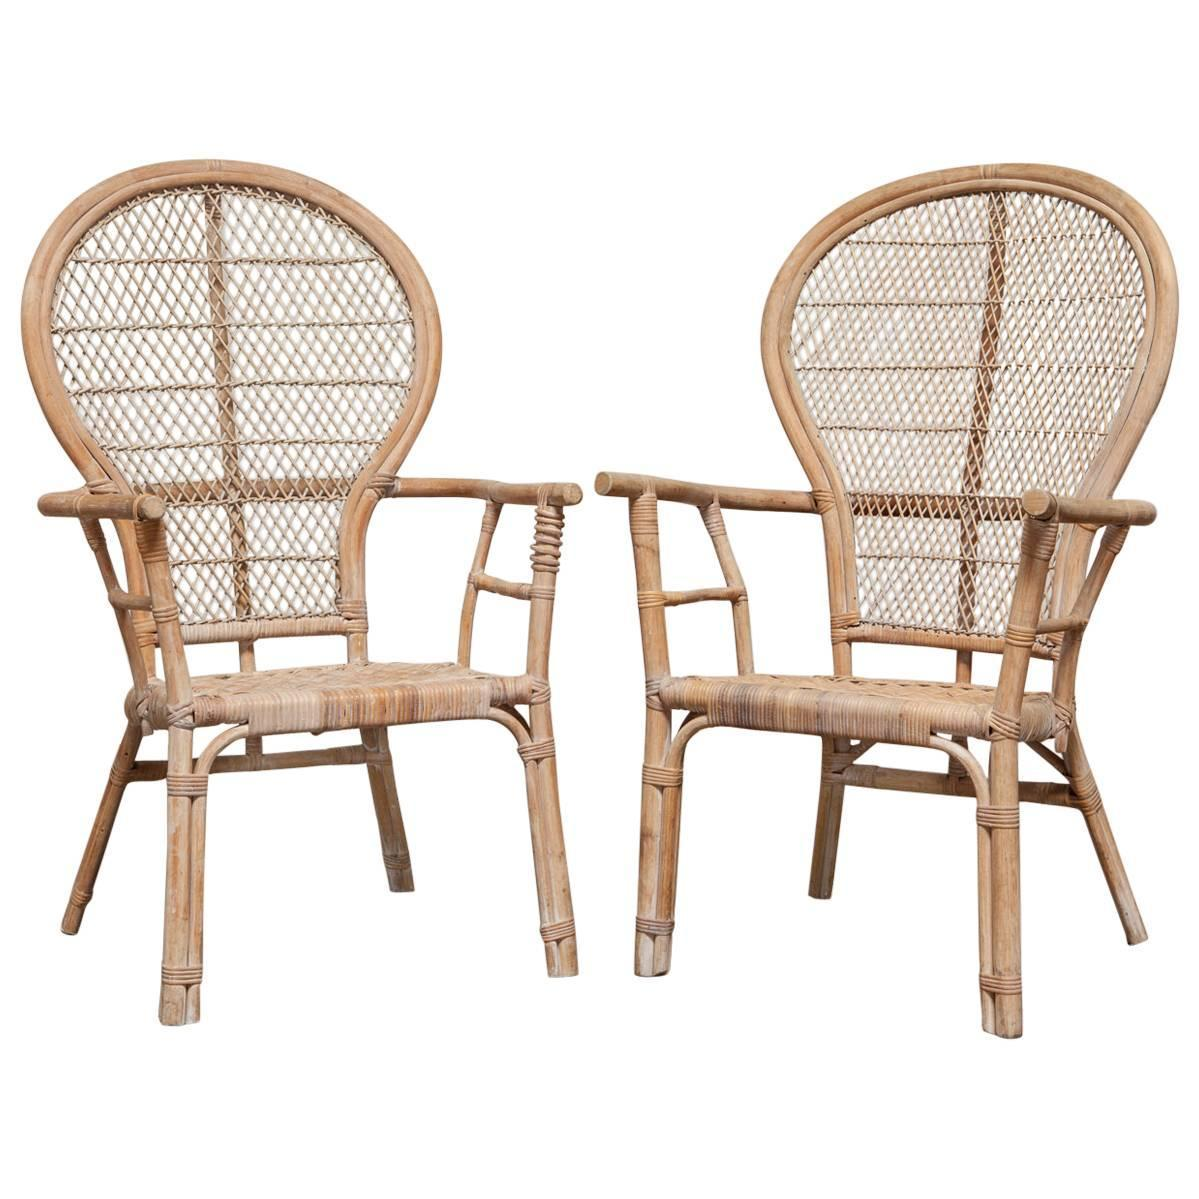 Fan Back Chair Pair Of Rattan Fan Back Peacock Chairs For Sale At 1stdibs